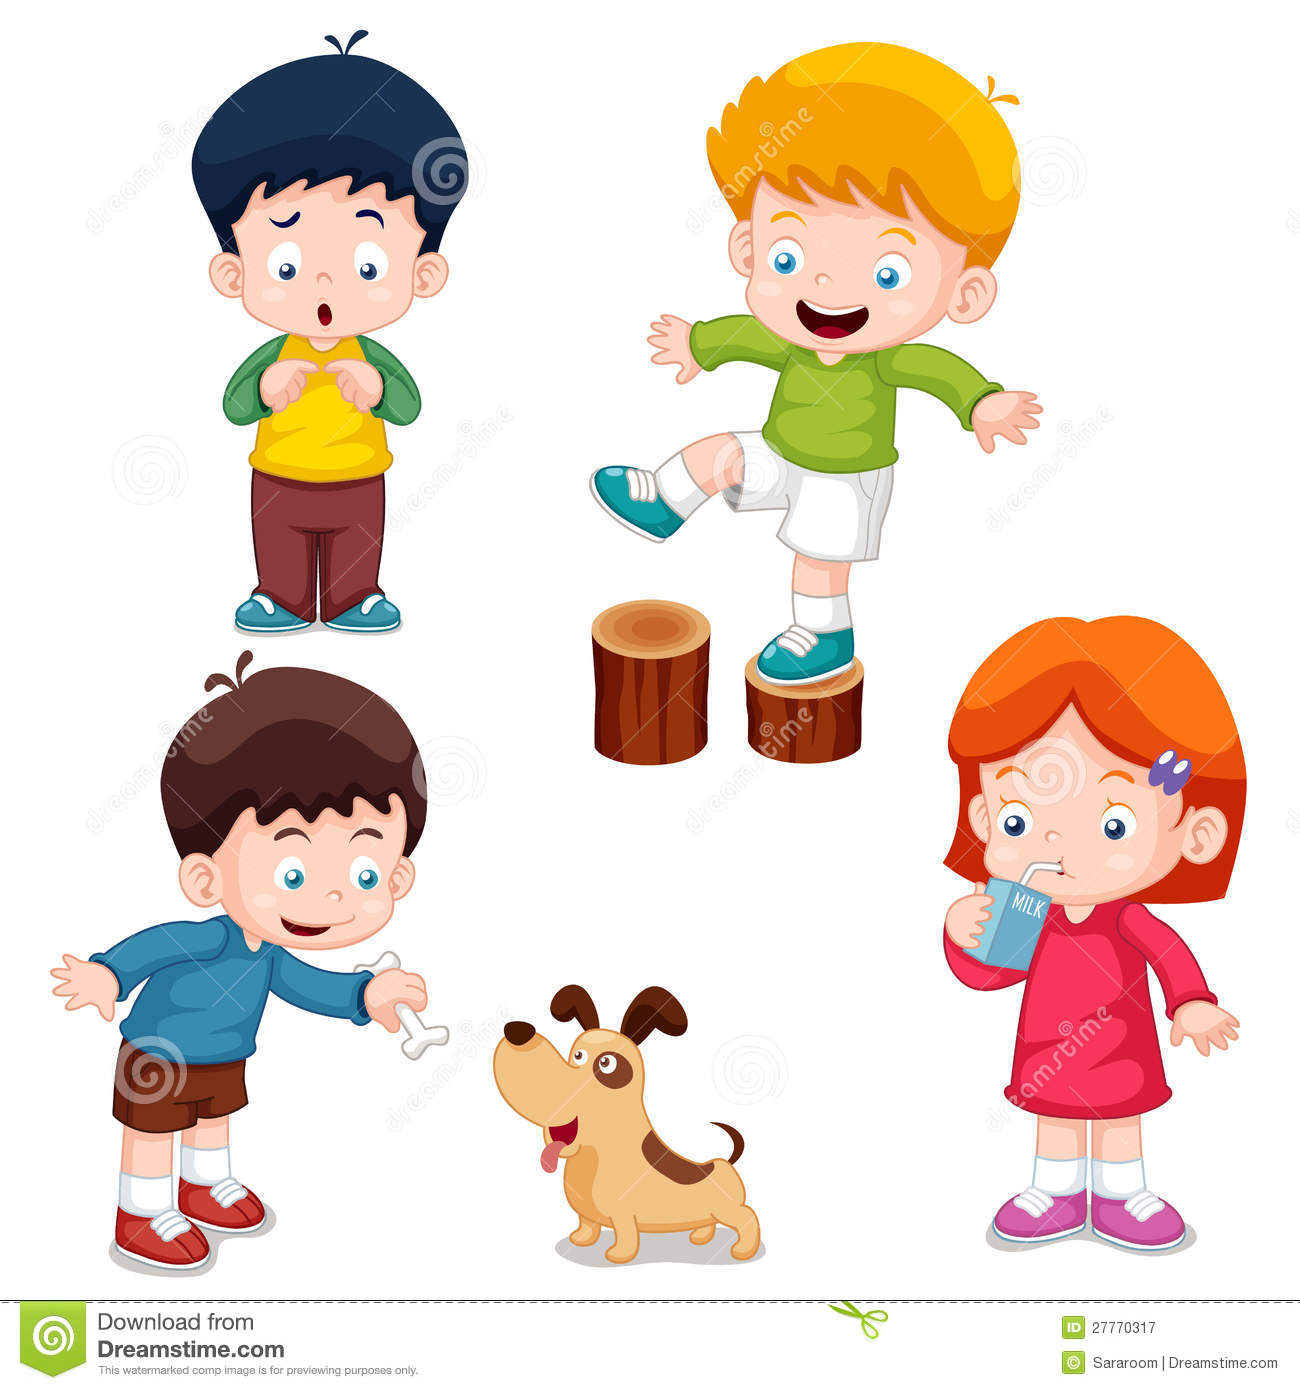 Cartoon Characters For Kids : Characters kids cartoon royalty free stock photography